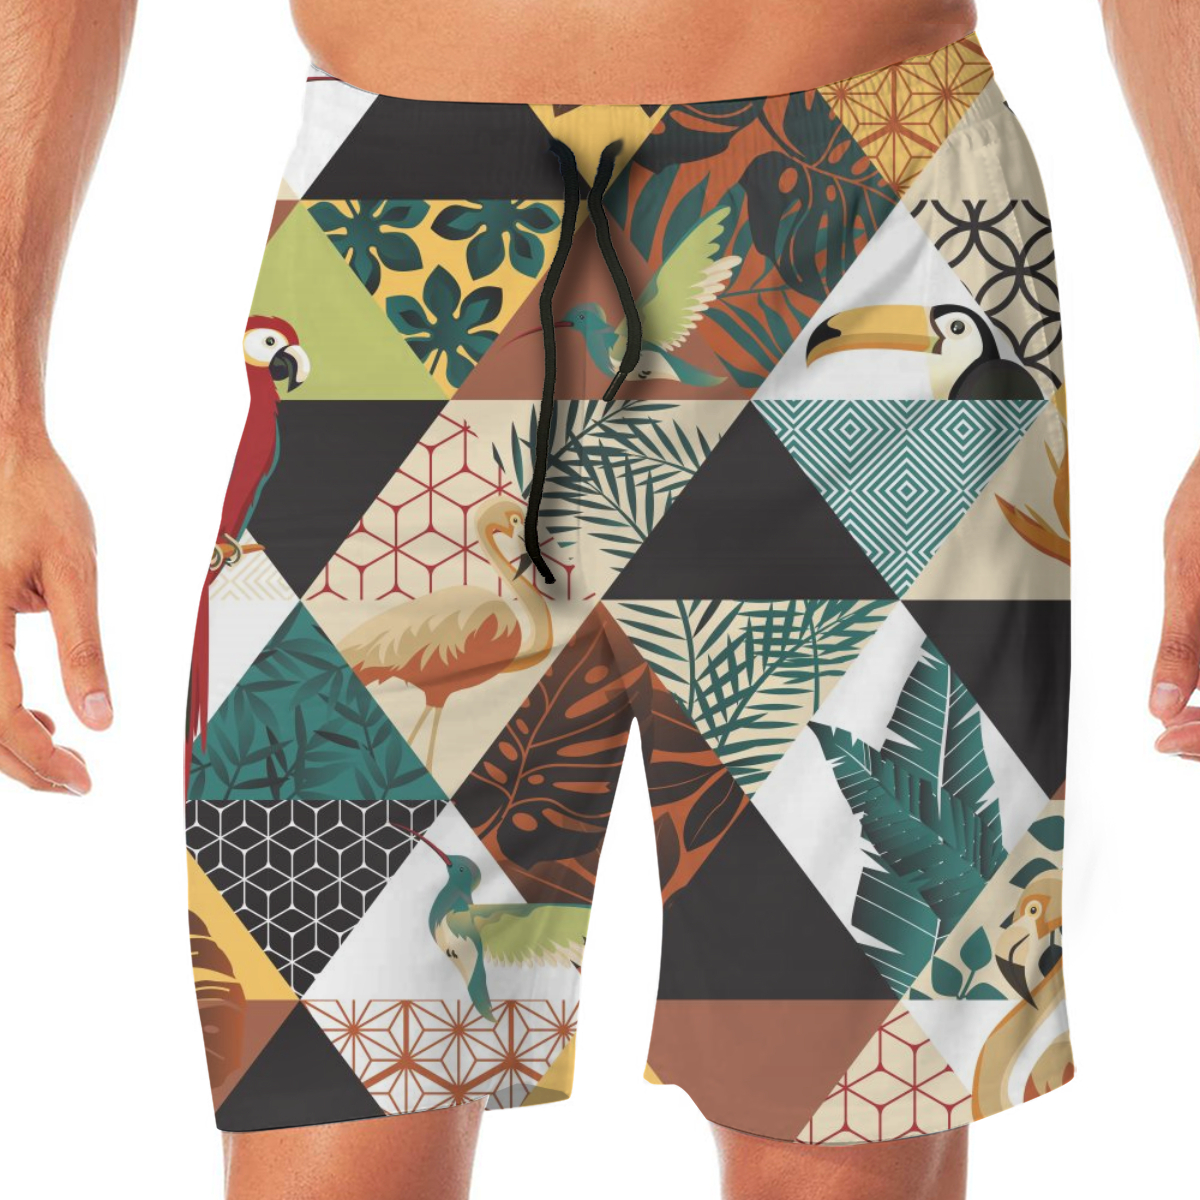 Summer Men's Beach Shorts Exotic Hawaii Art With Parrot Toucans Hummingbird And Tropical Palm Leaves Shorts Men's Short Trousers